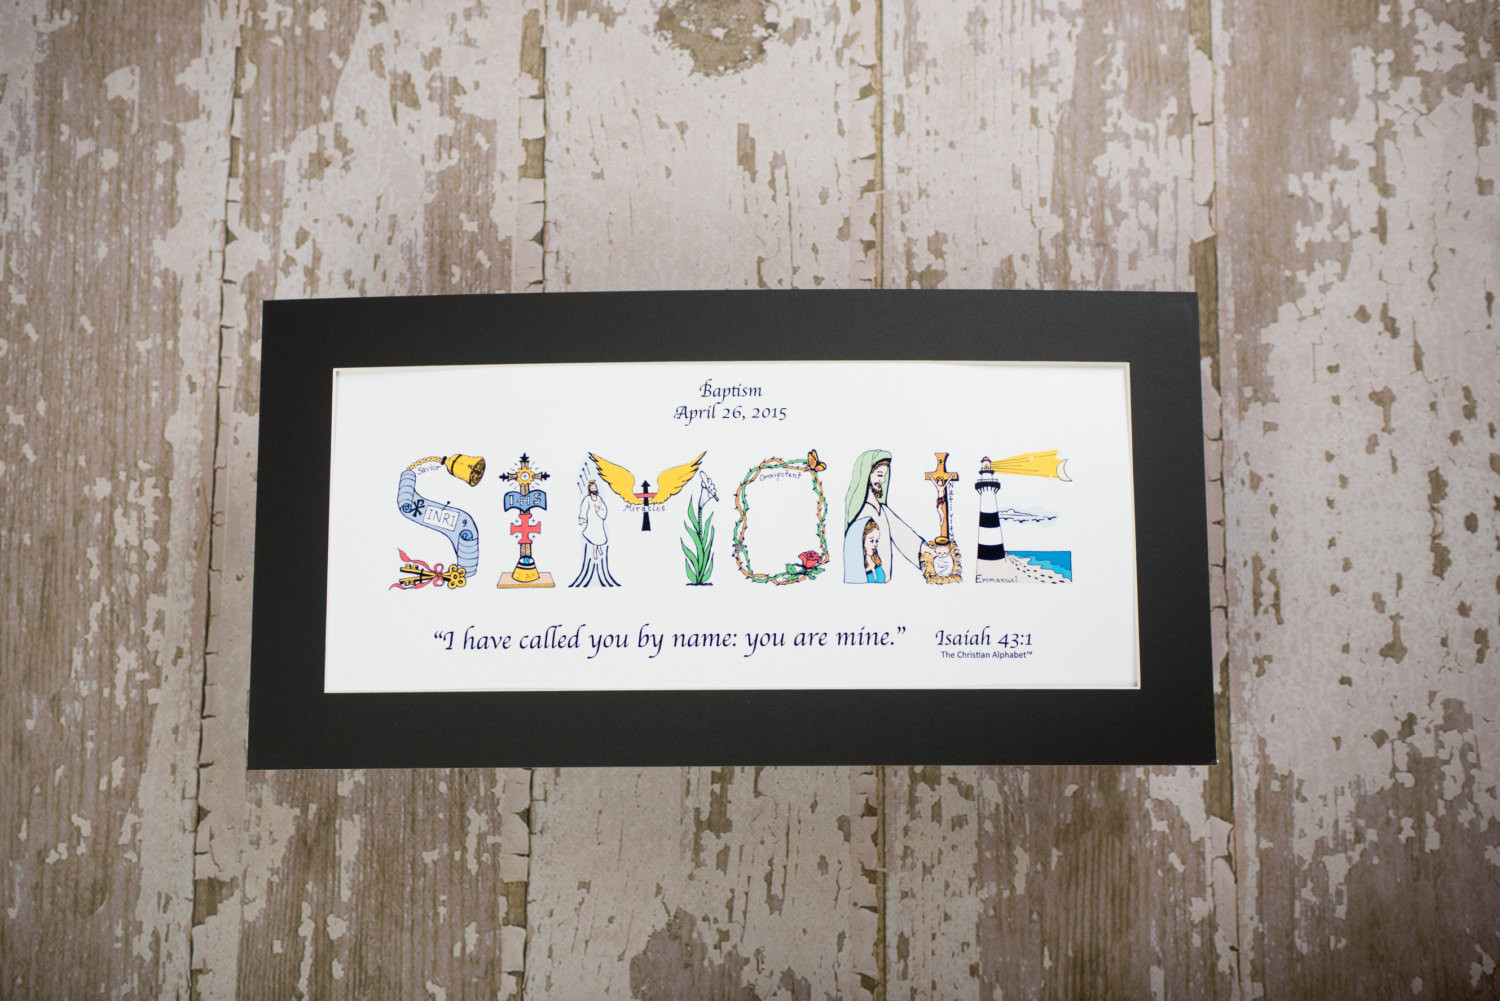 Christian Baby Gifts Personalized  Baby Dedication Gift Personalized Christian Gifts